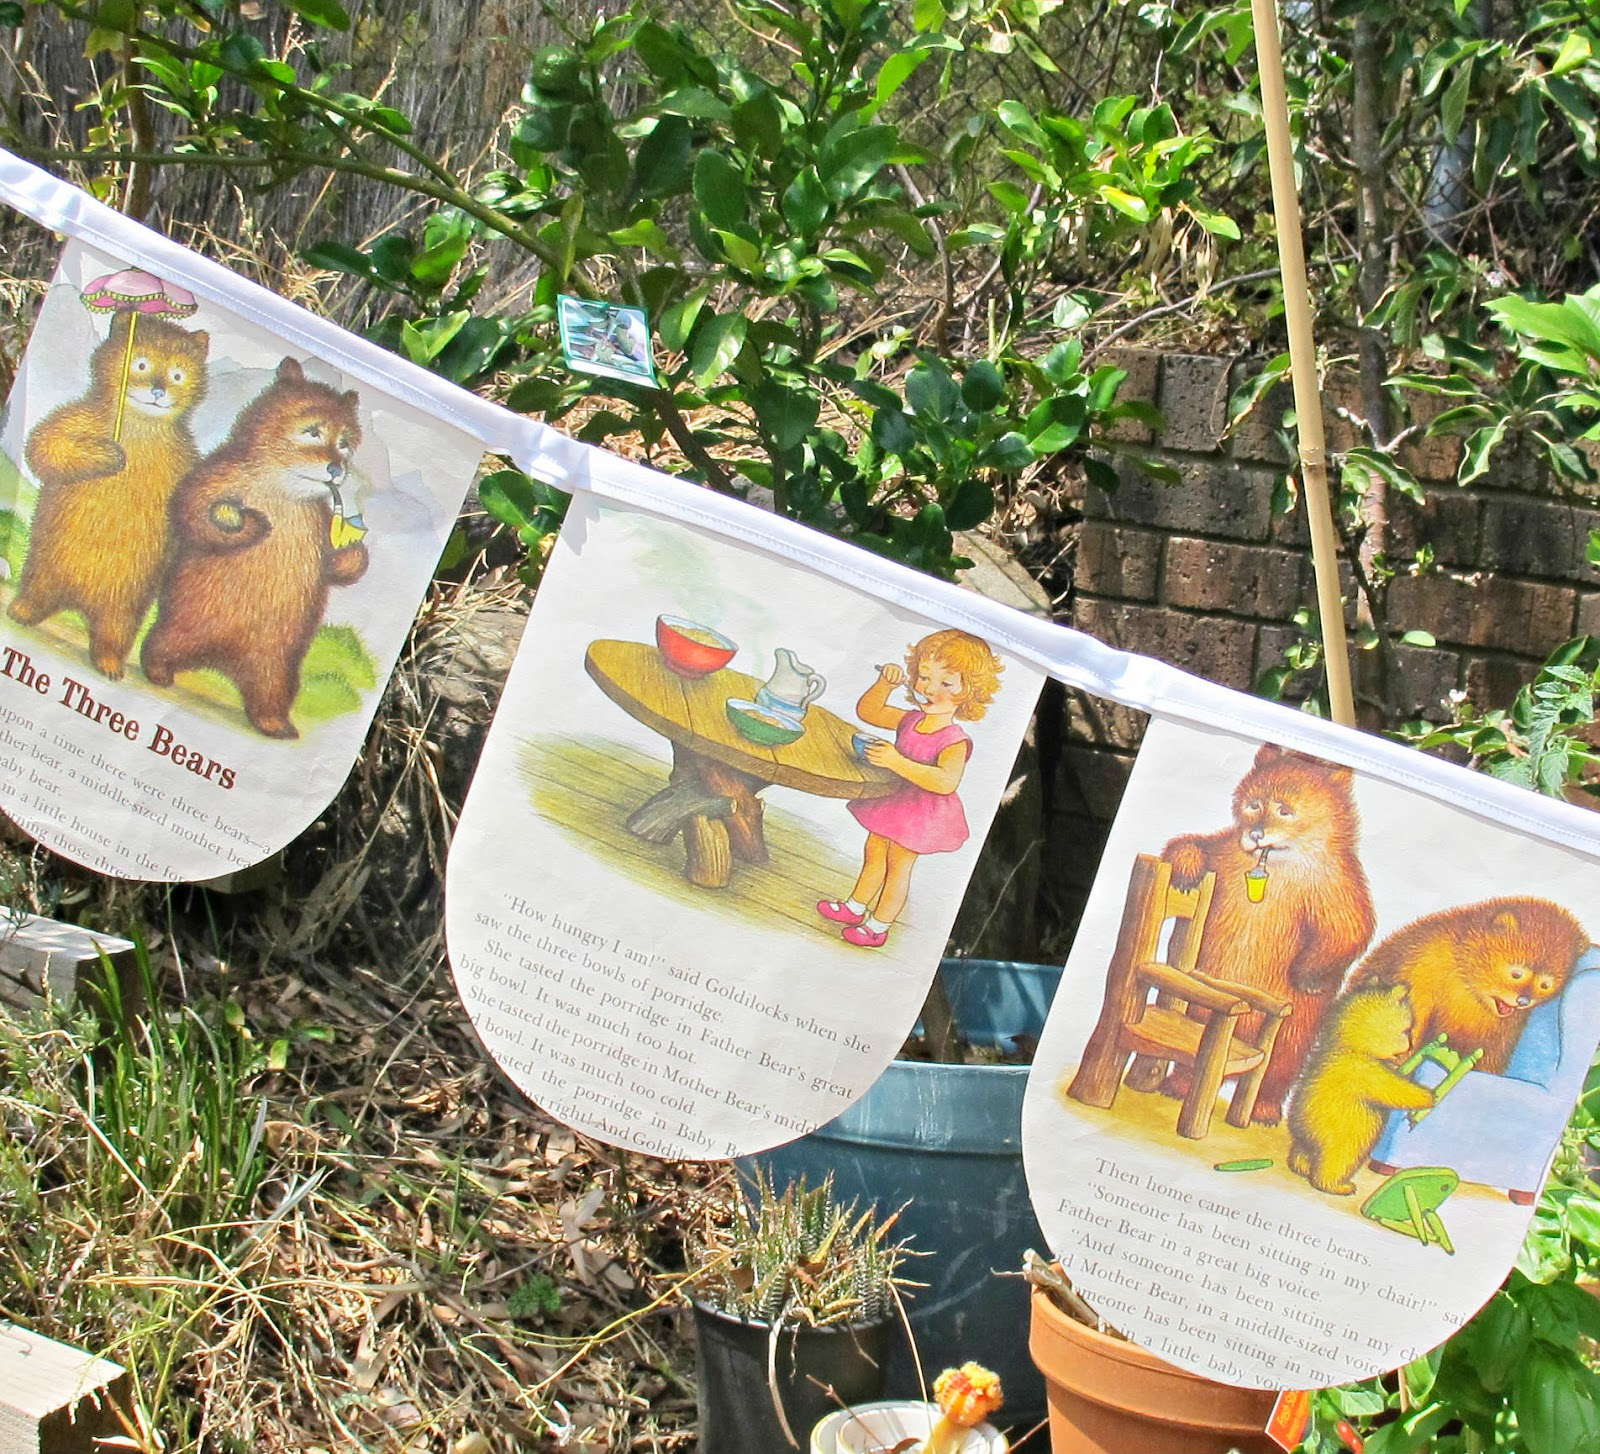 image golden book bunting fairytale nursery rhyme goldilocks and the three bears domum vindemia